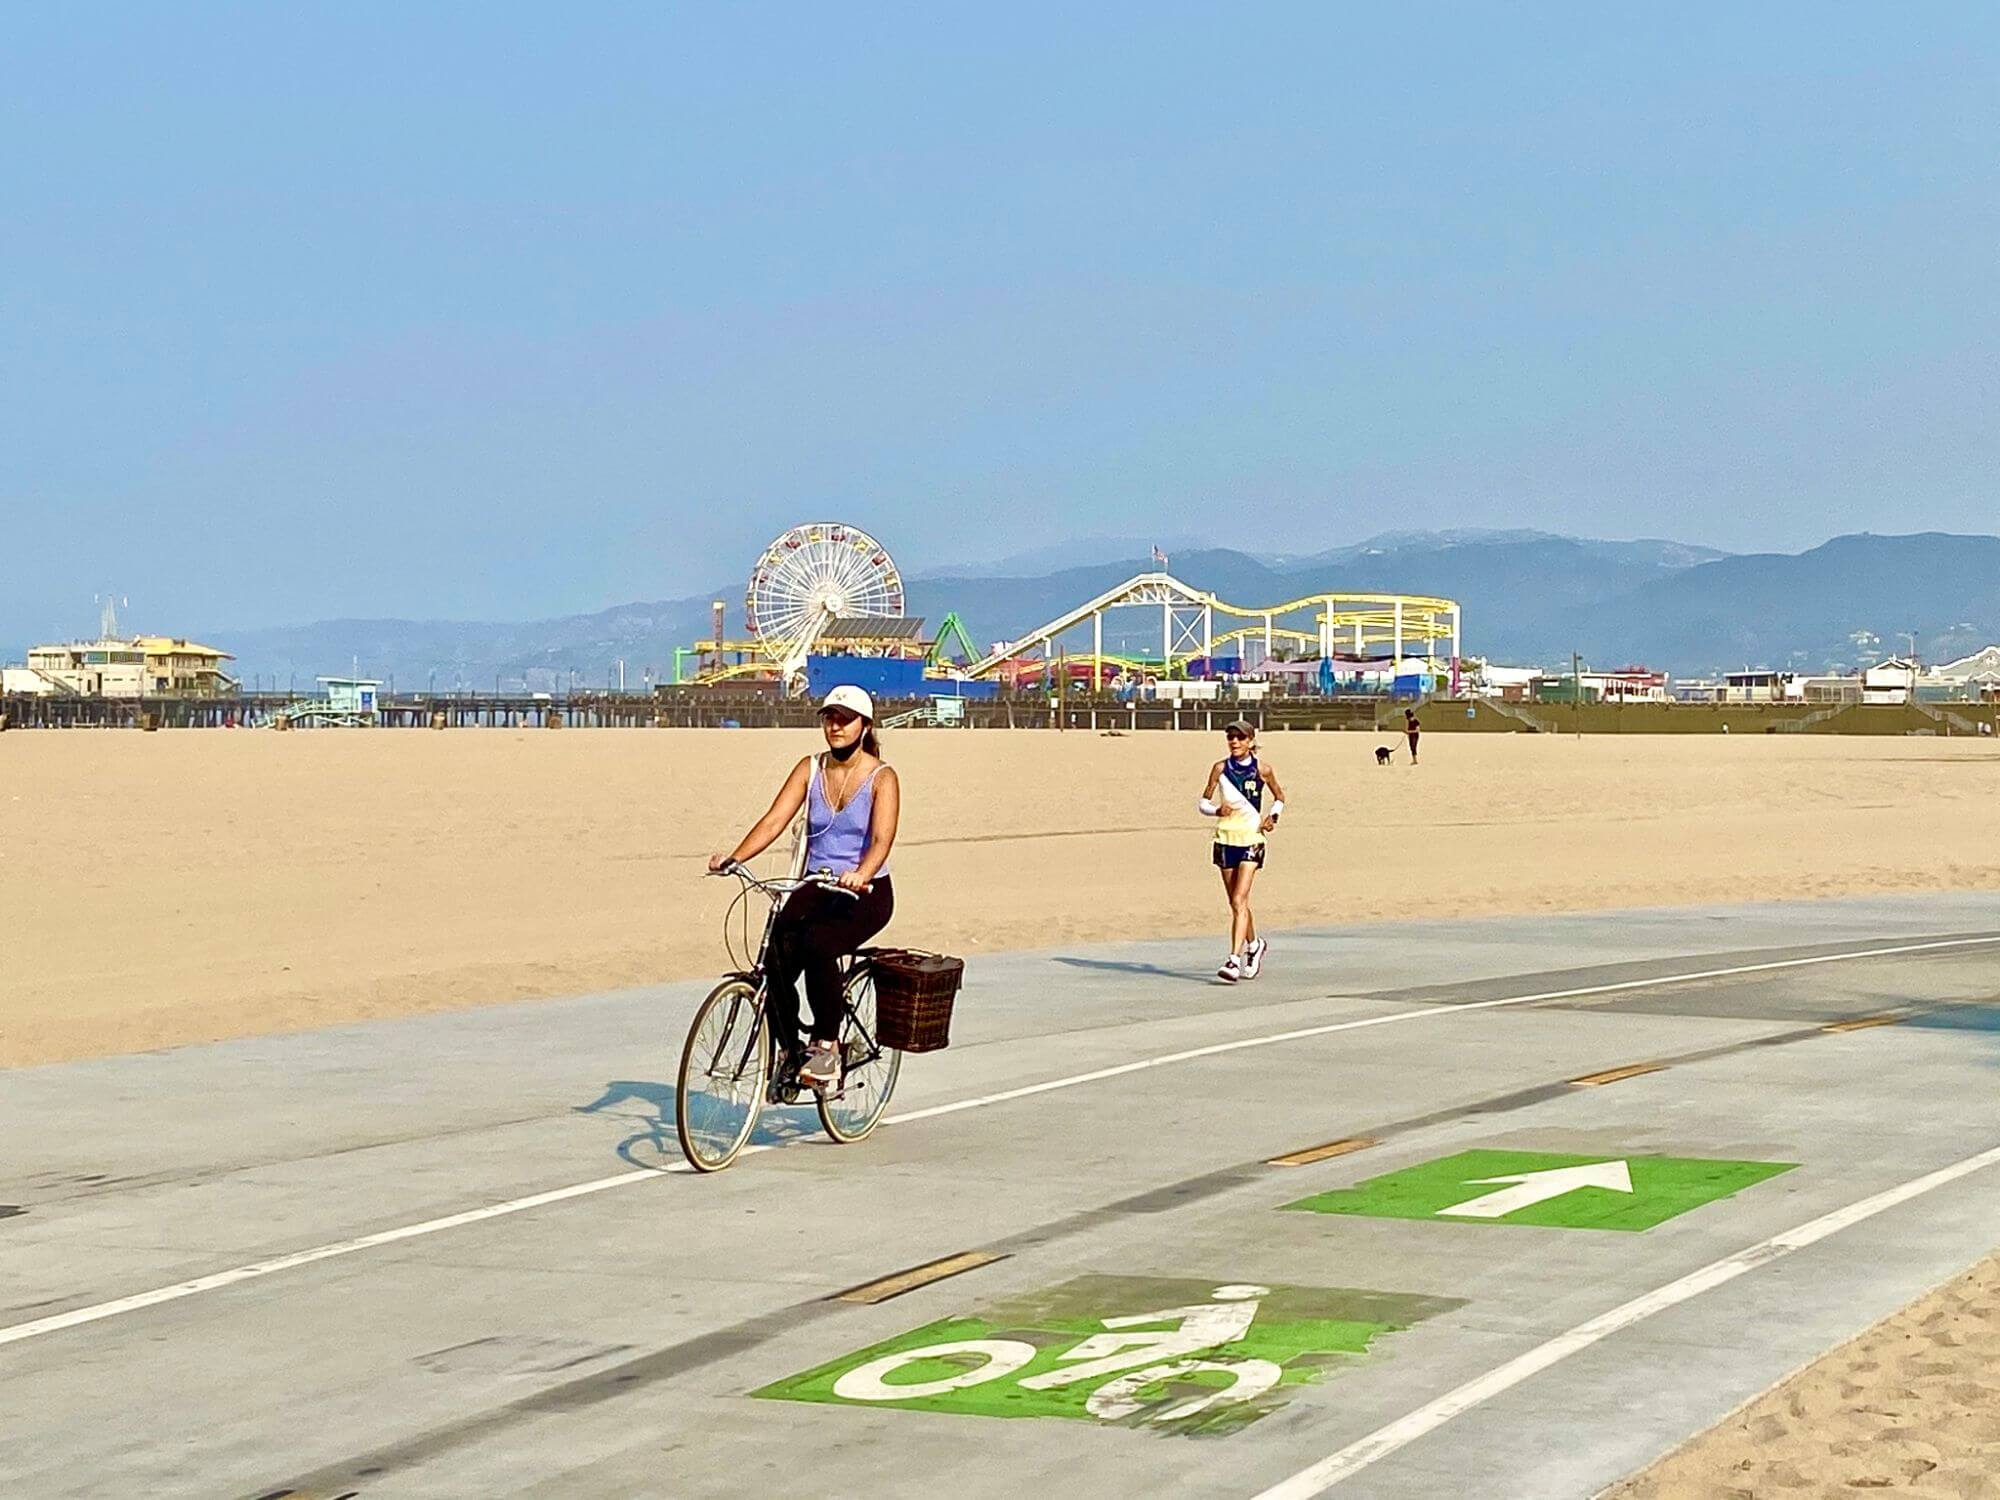 Biking along the Strand in Santa Monica